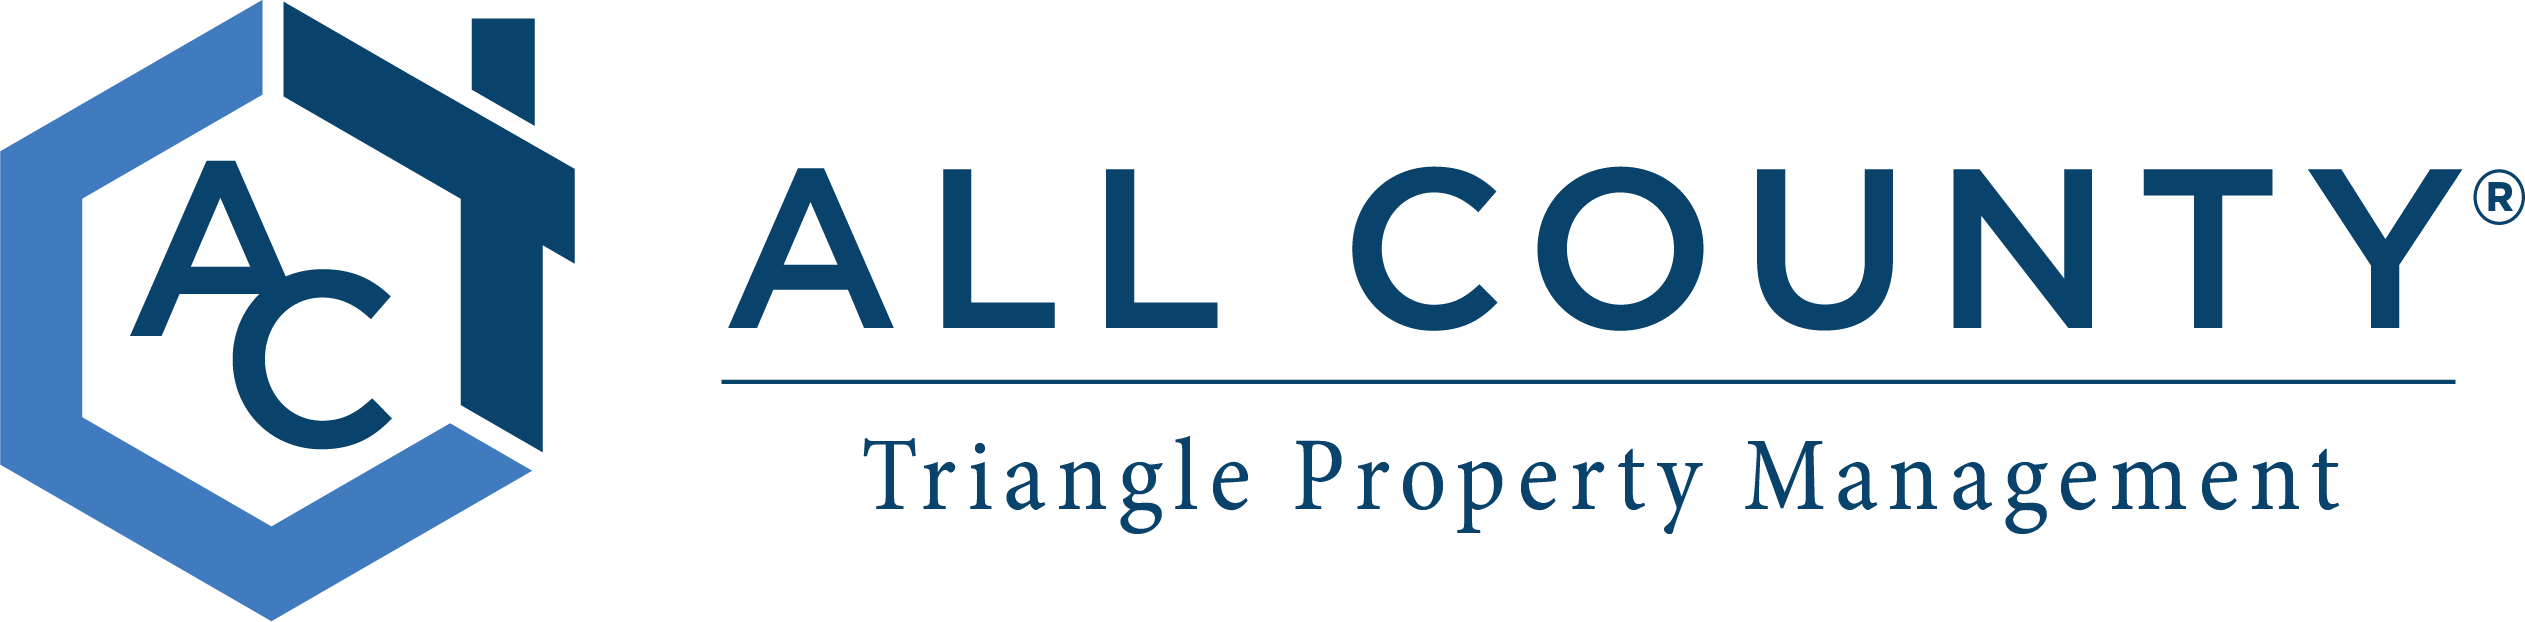 All County Triangle Property Management